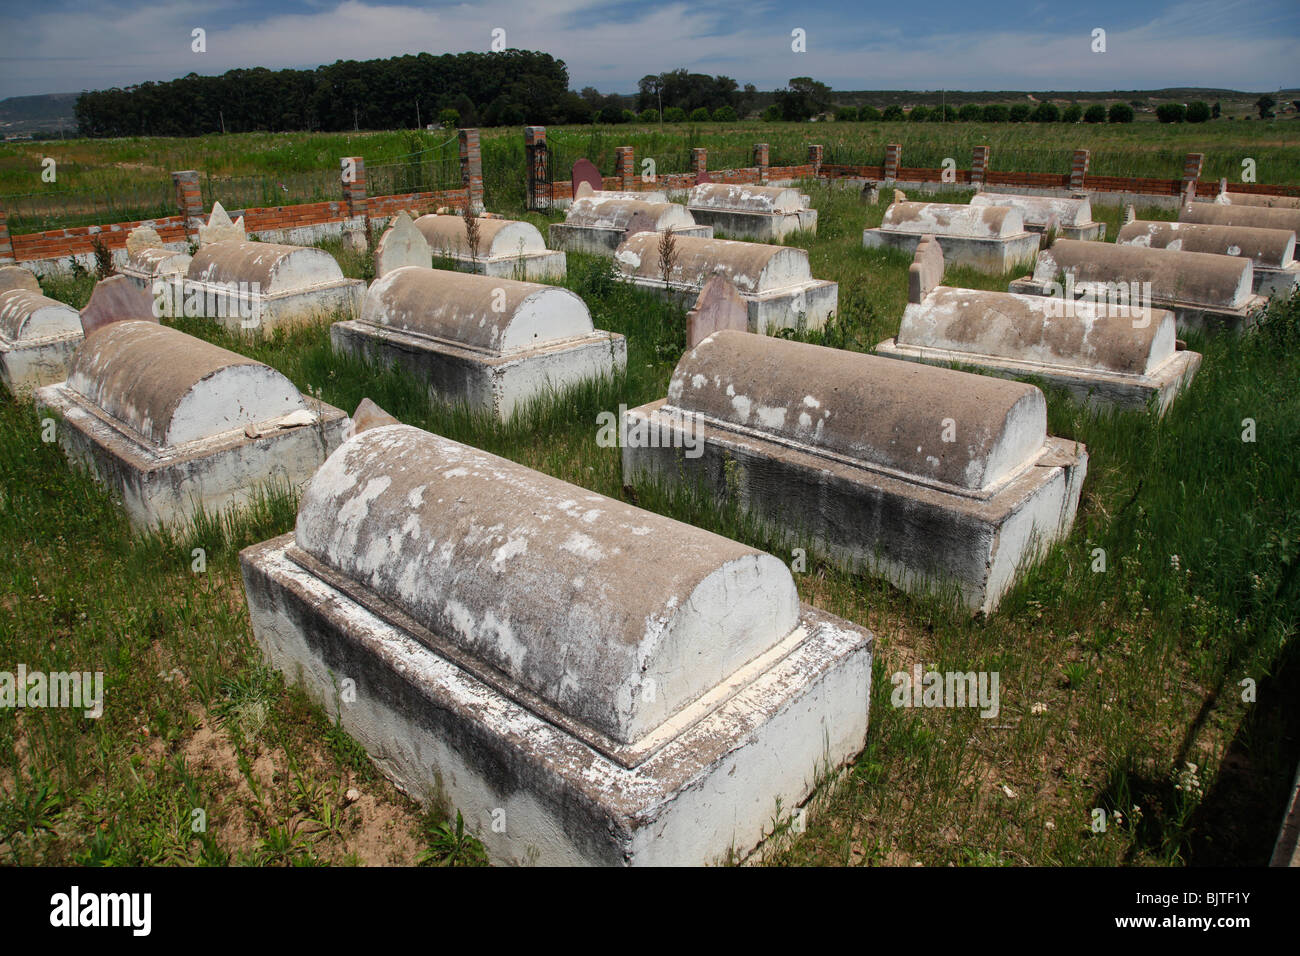 Boer cemetery of early Boer settlers from the 1800's, Nr Lubango, Huila Province, Angola. Africa. - Stock Image